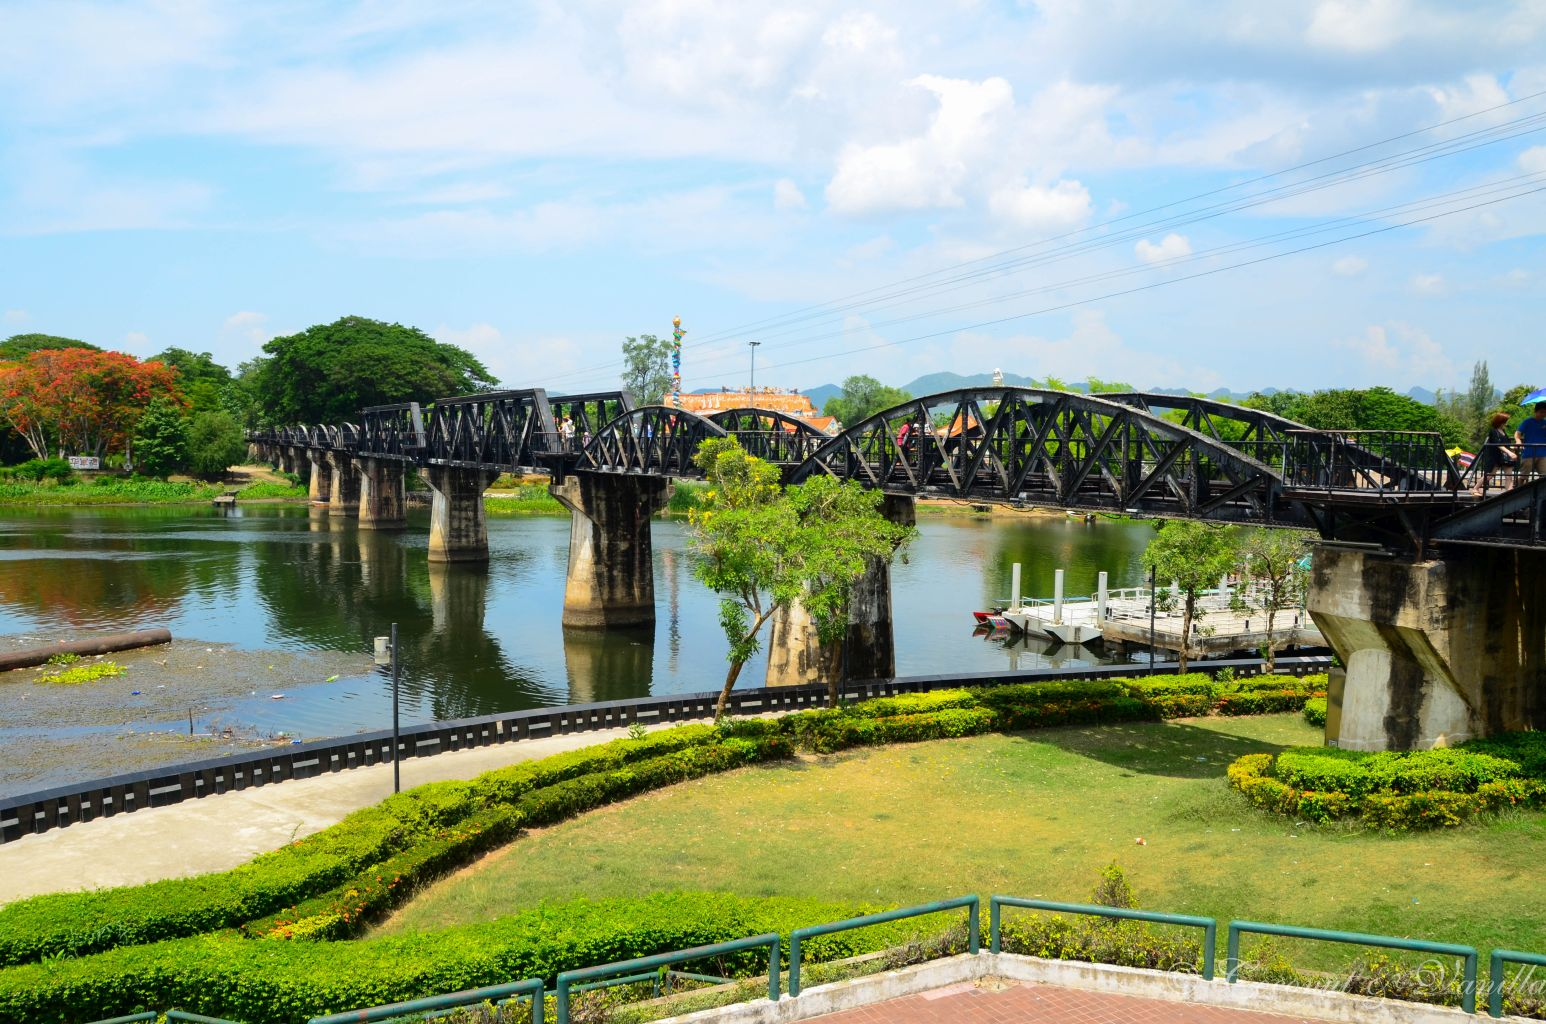 River Kwai Bridge in Kanchanaburi